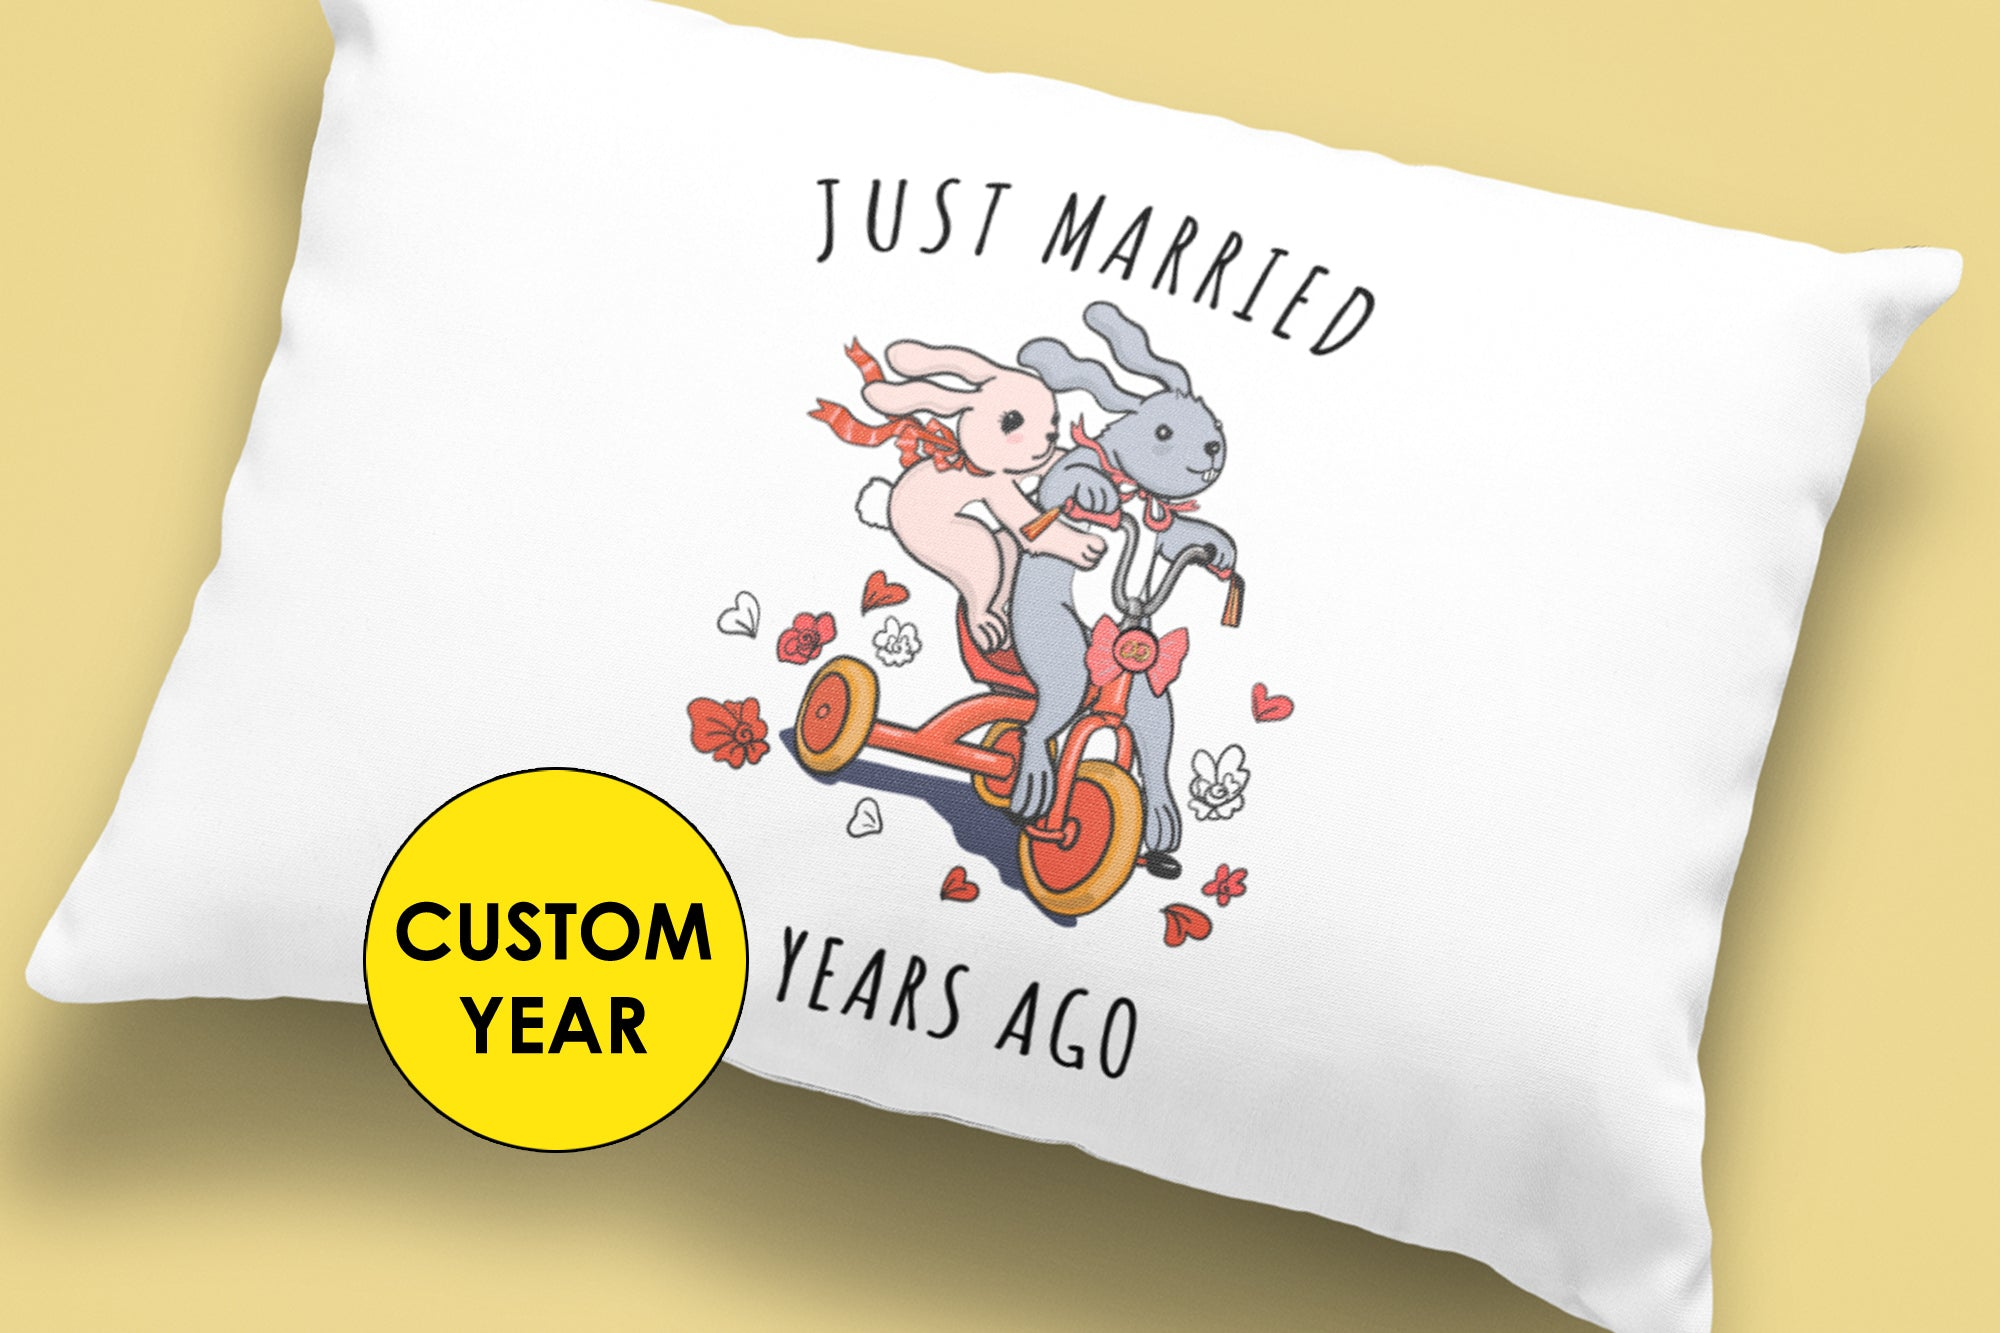 Wedding Anniversary Gift for Parents - Basic Pillow, Custom Year, Cute Design